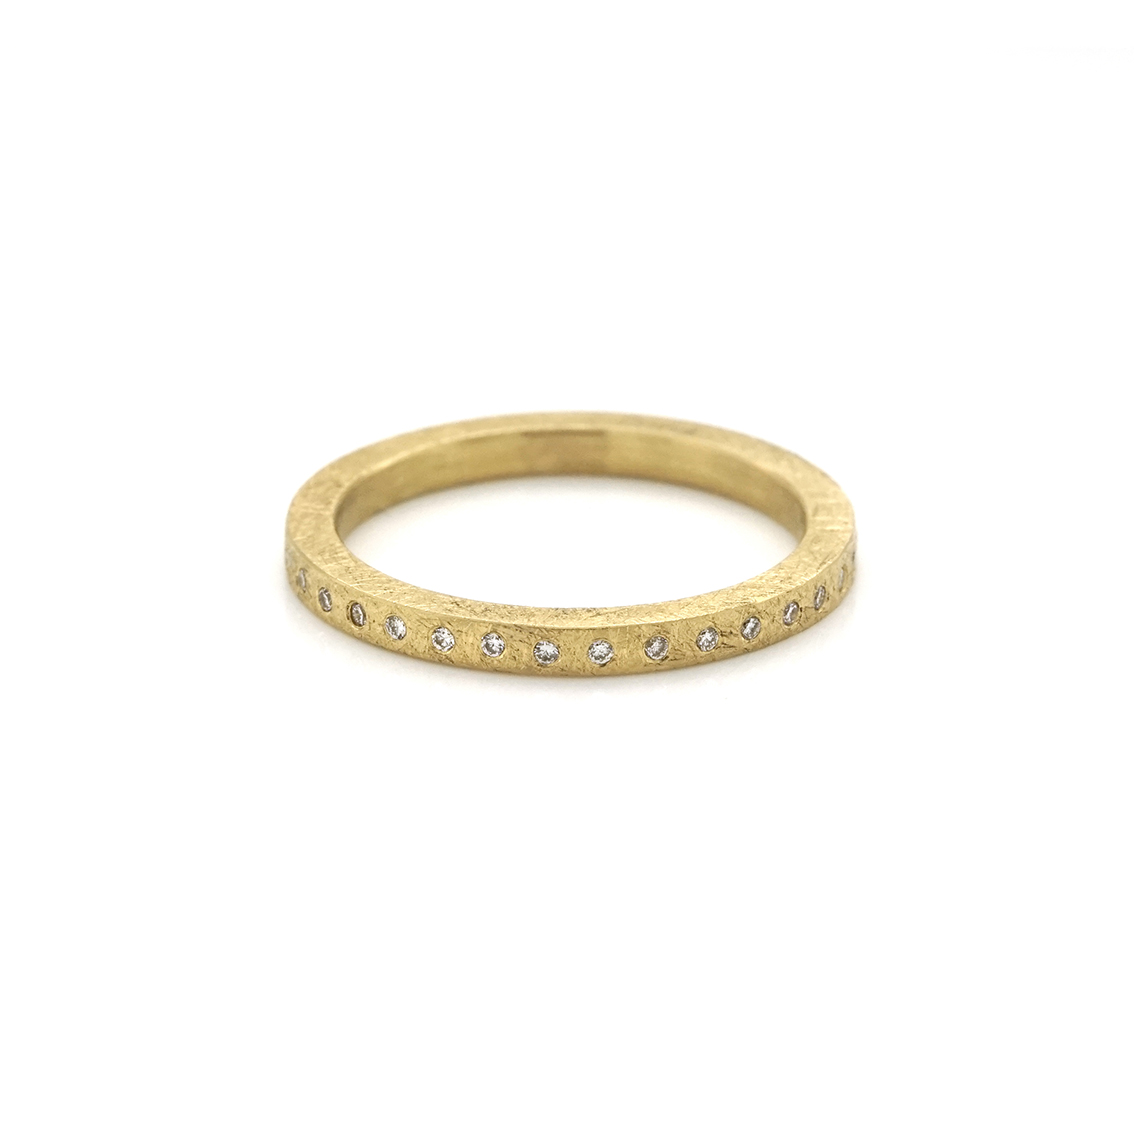 Small band ring with diamonds